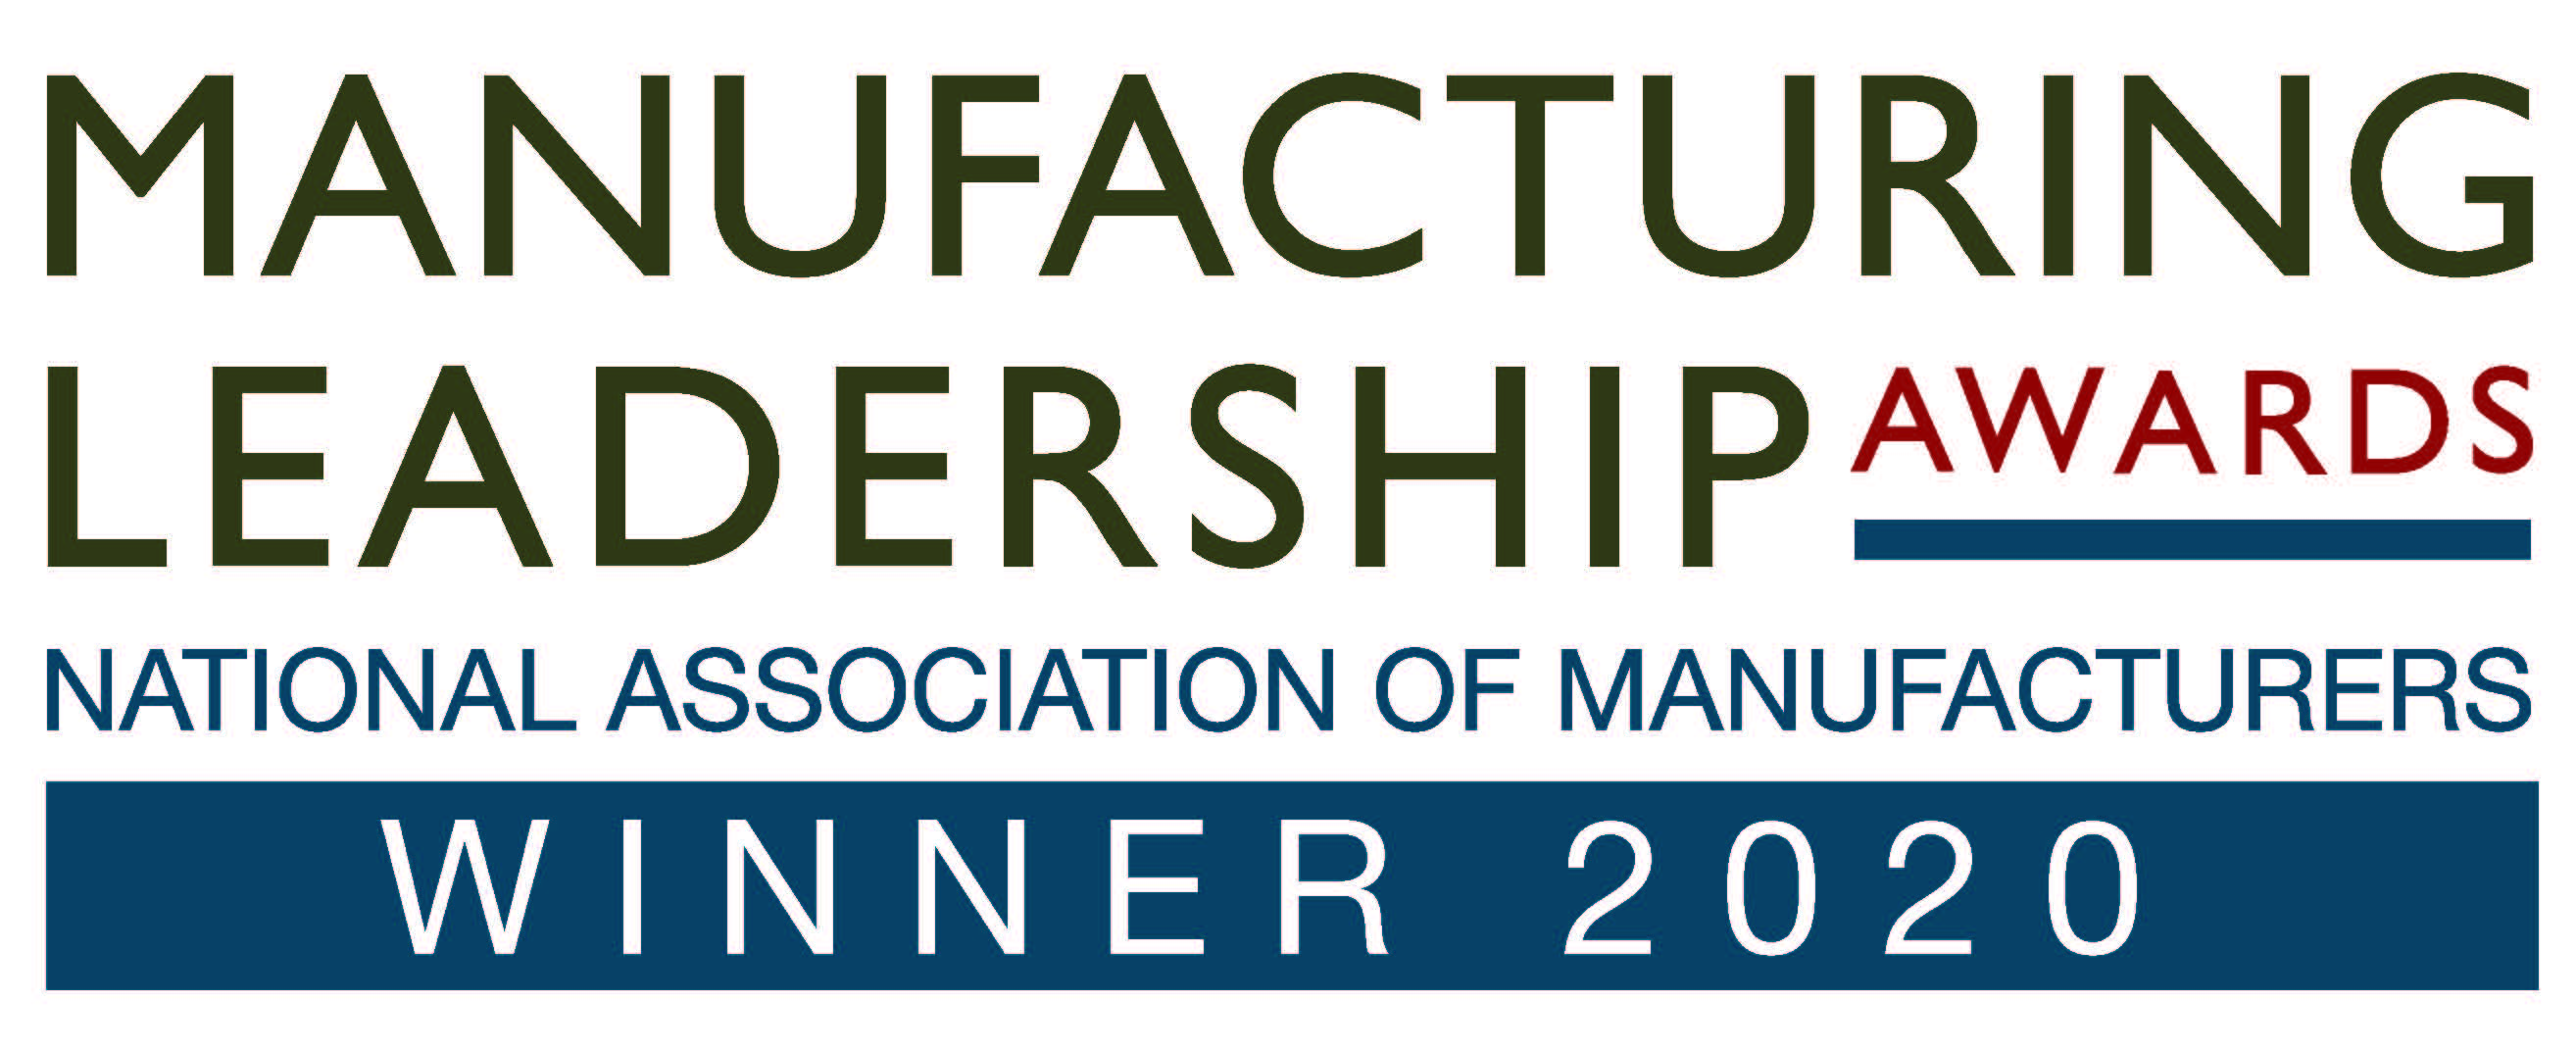 "WCCO Belting Receives ""Manufacturing Leadership Award for Operational Excellence"" from the National Association of Manufacturers, Press Release"